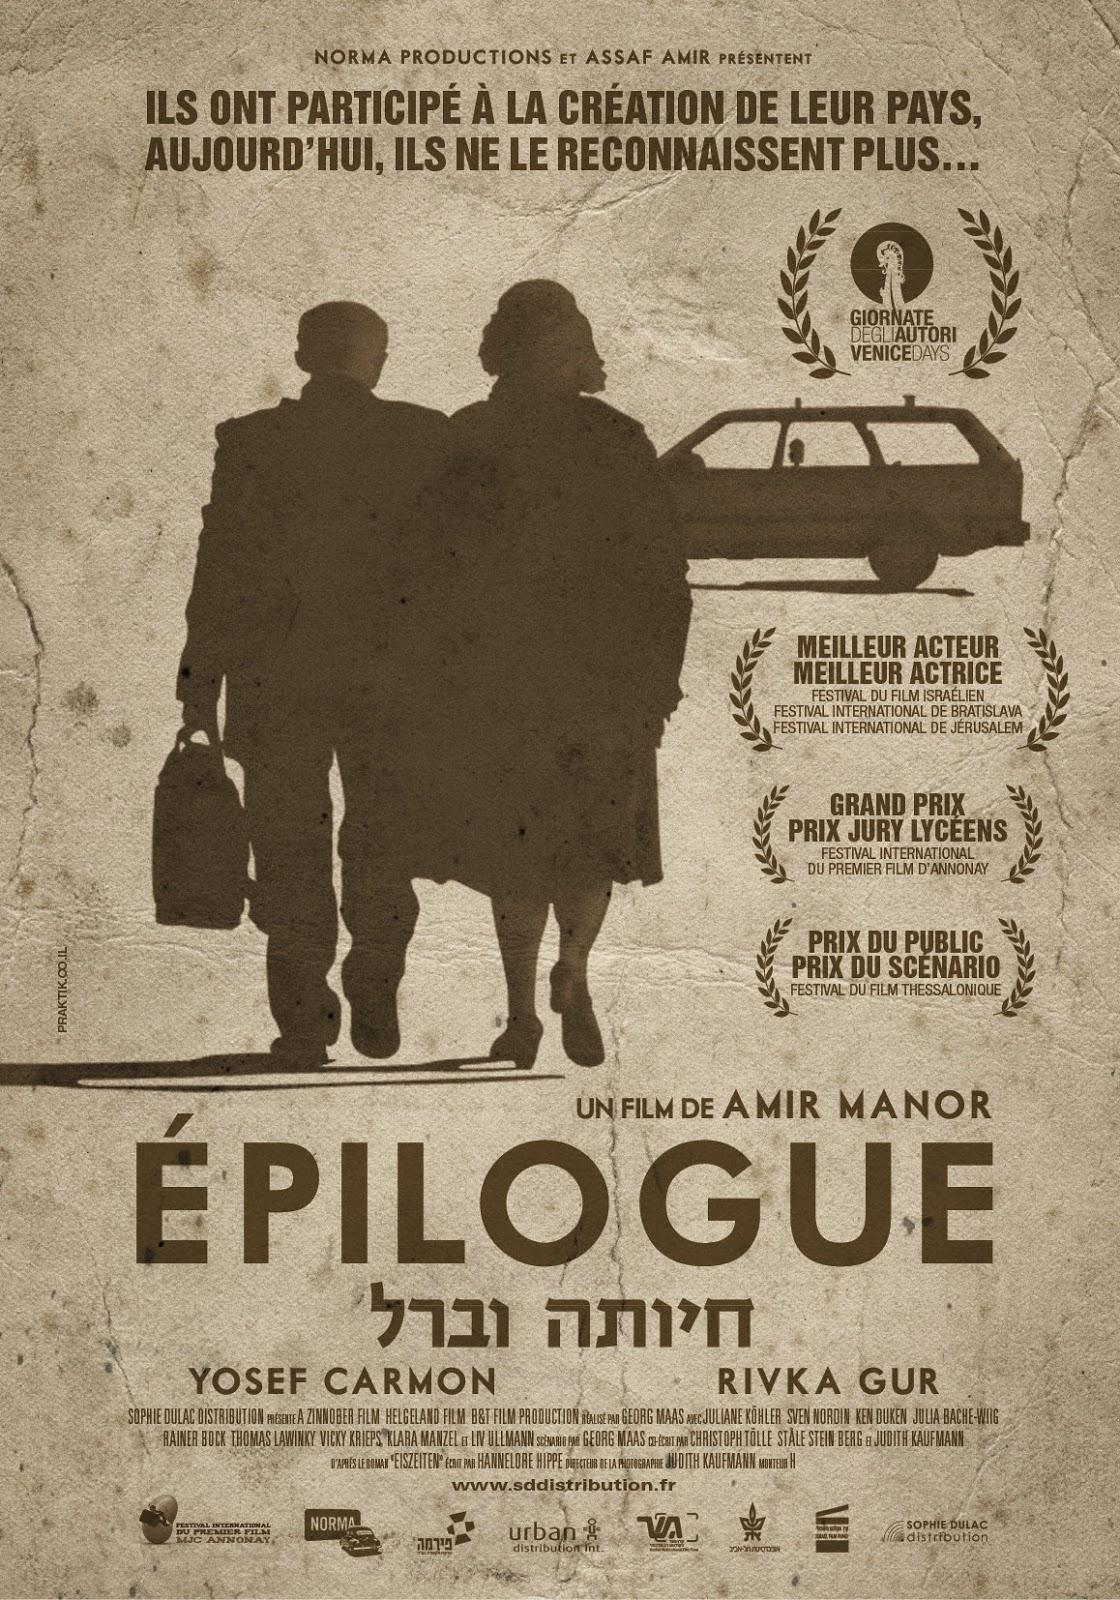 CINEMA: [DVD] Epilogue (2012), le crépuscule d'une génération / the twilight of a generation